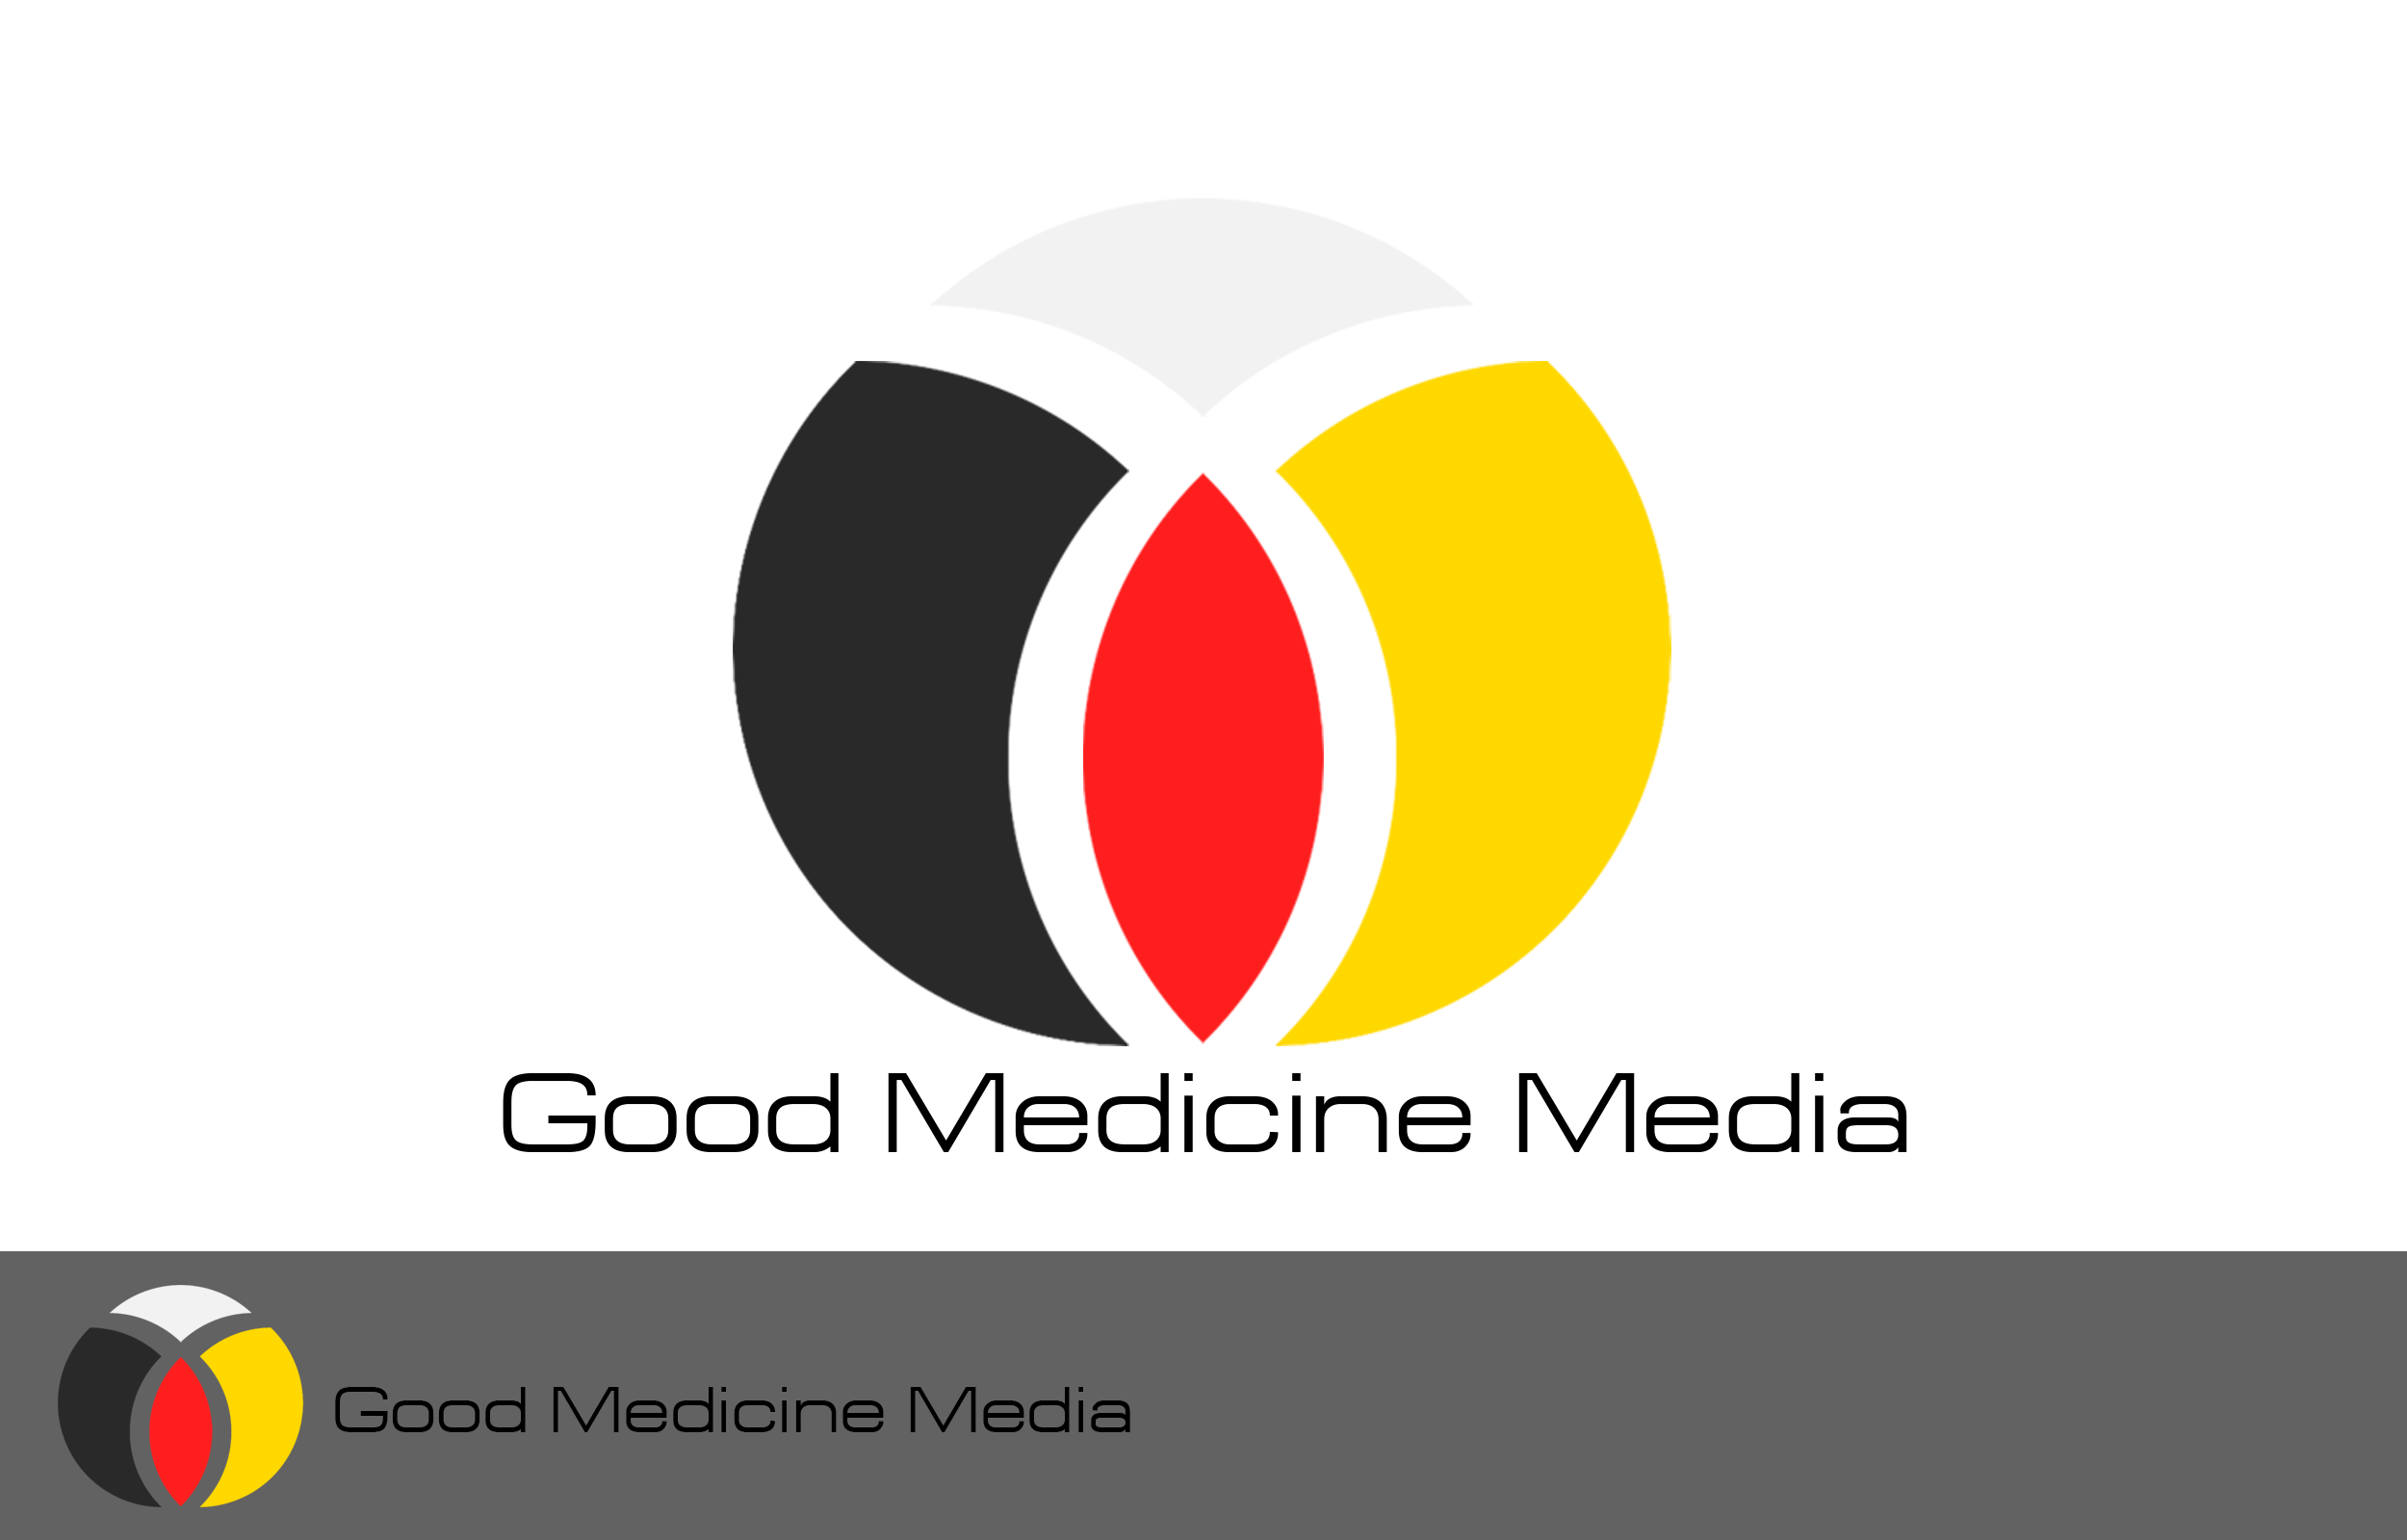 Logo Design by Private User - Entry No. 109 in the Logo Design Contest Good Medicine Media Logo Design.